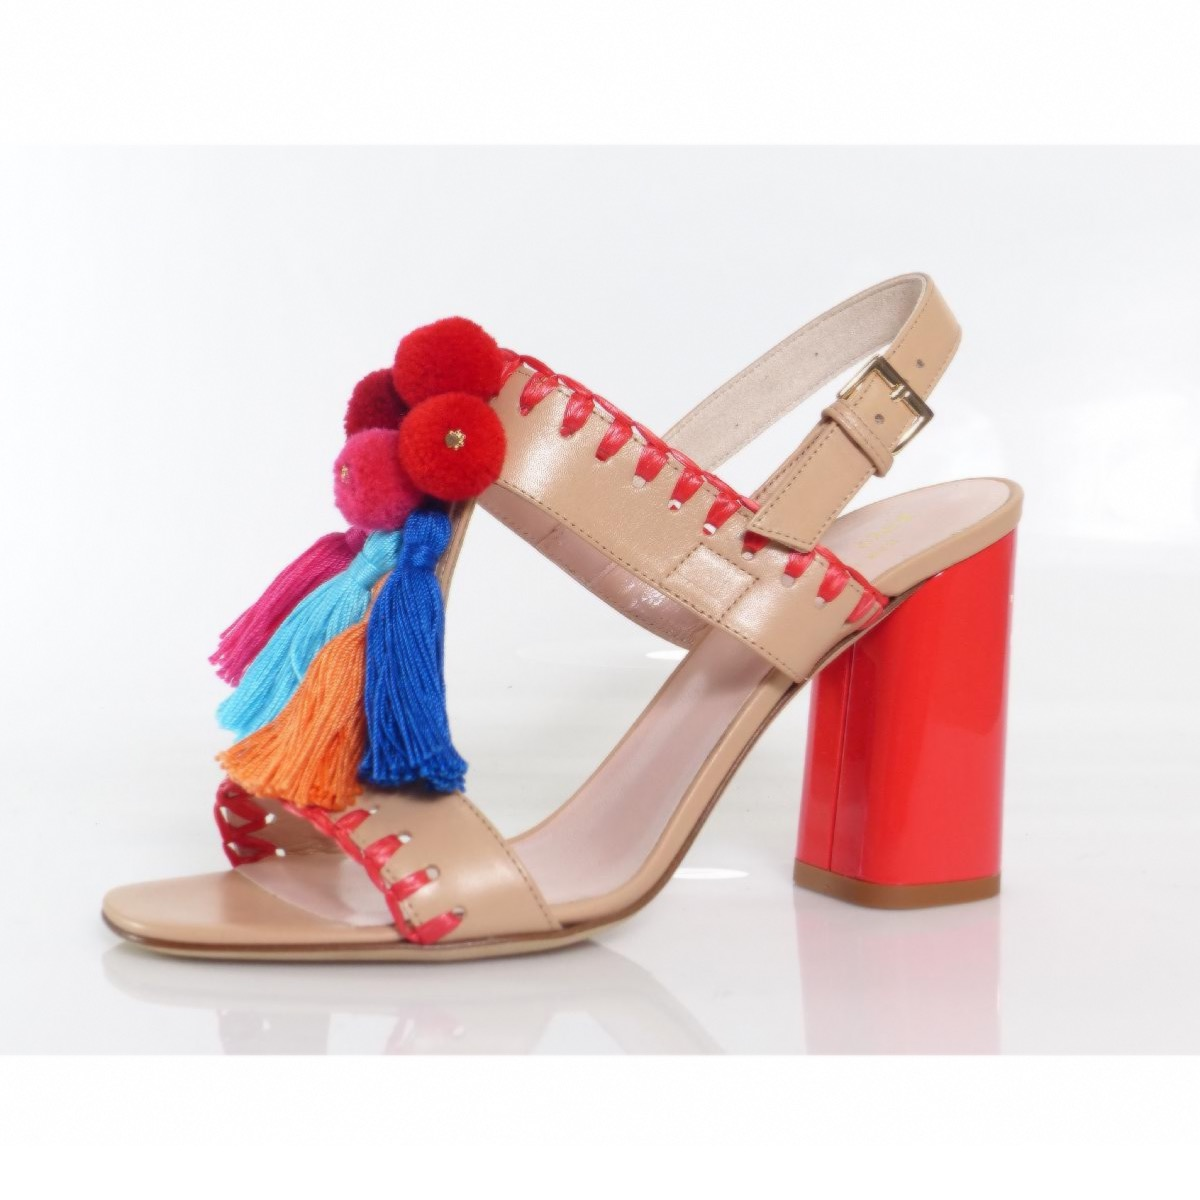 d5acb84c9cfa Kate Spade Central Sandal. Chosen for you. This sandal is a riot of fun. It  has everything you can throw at it